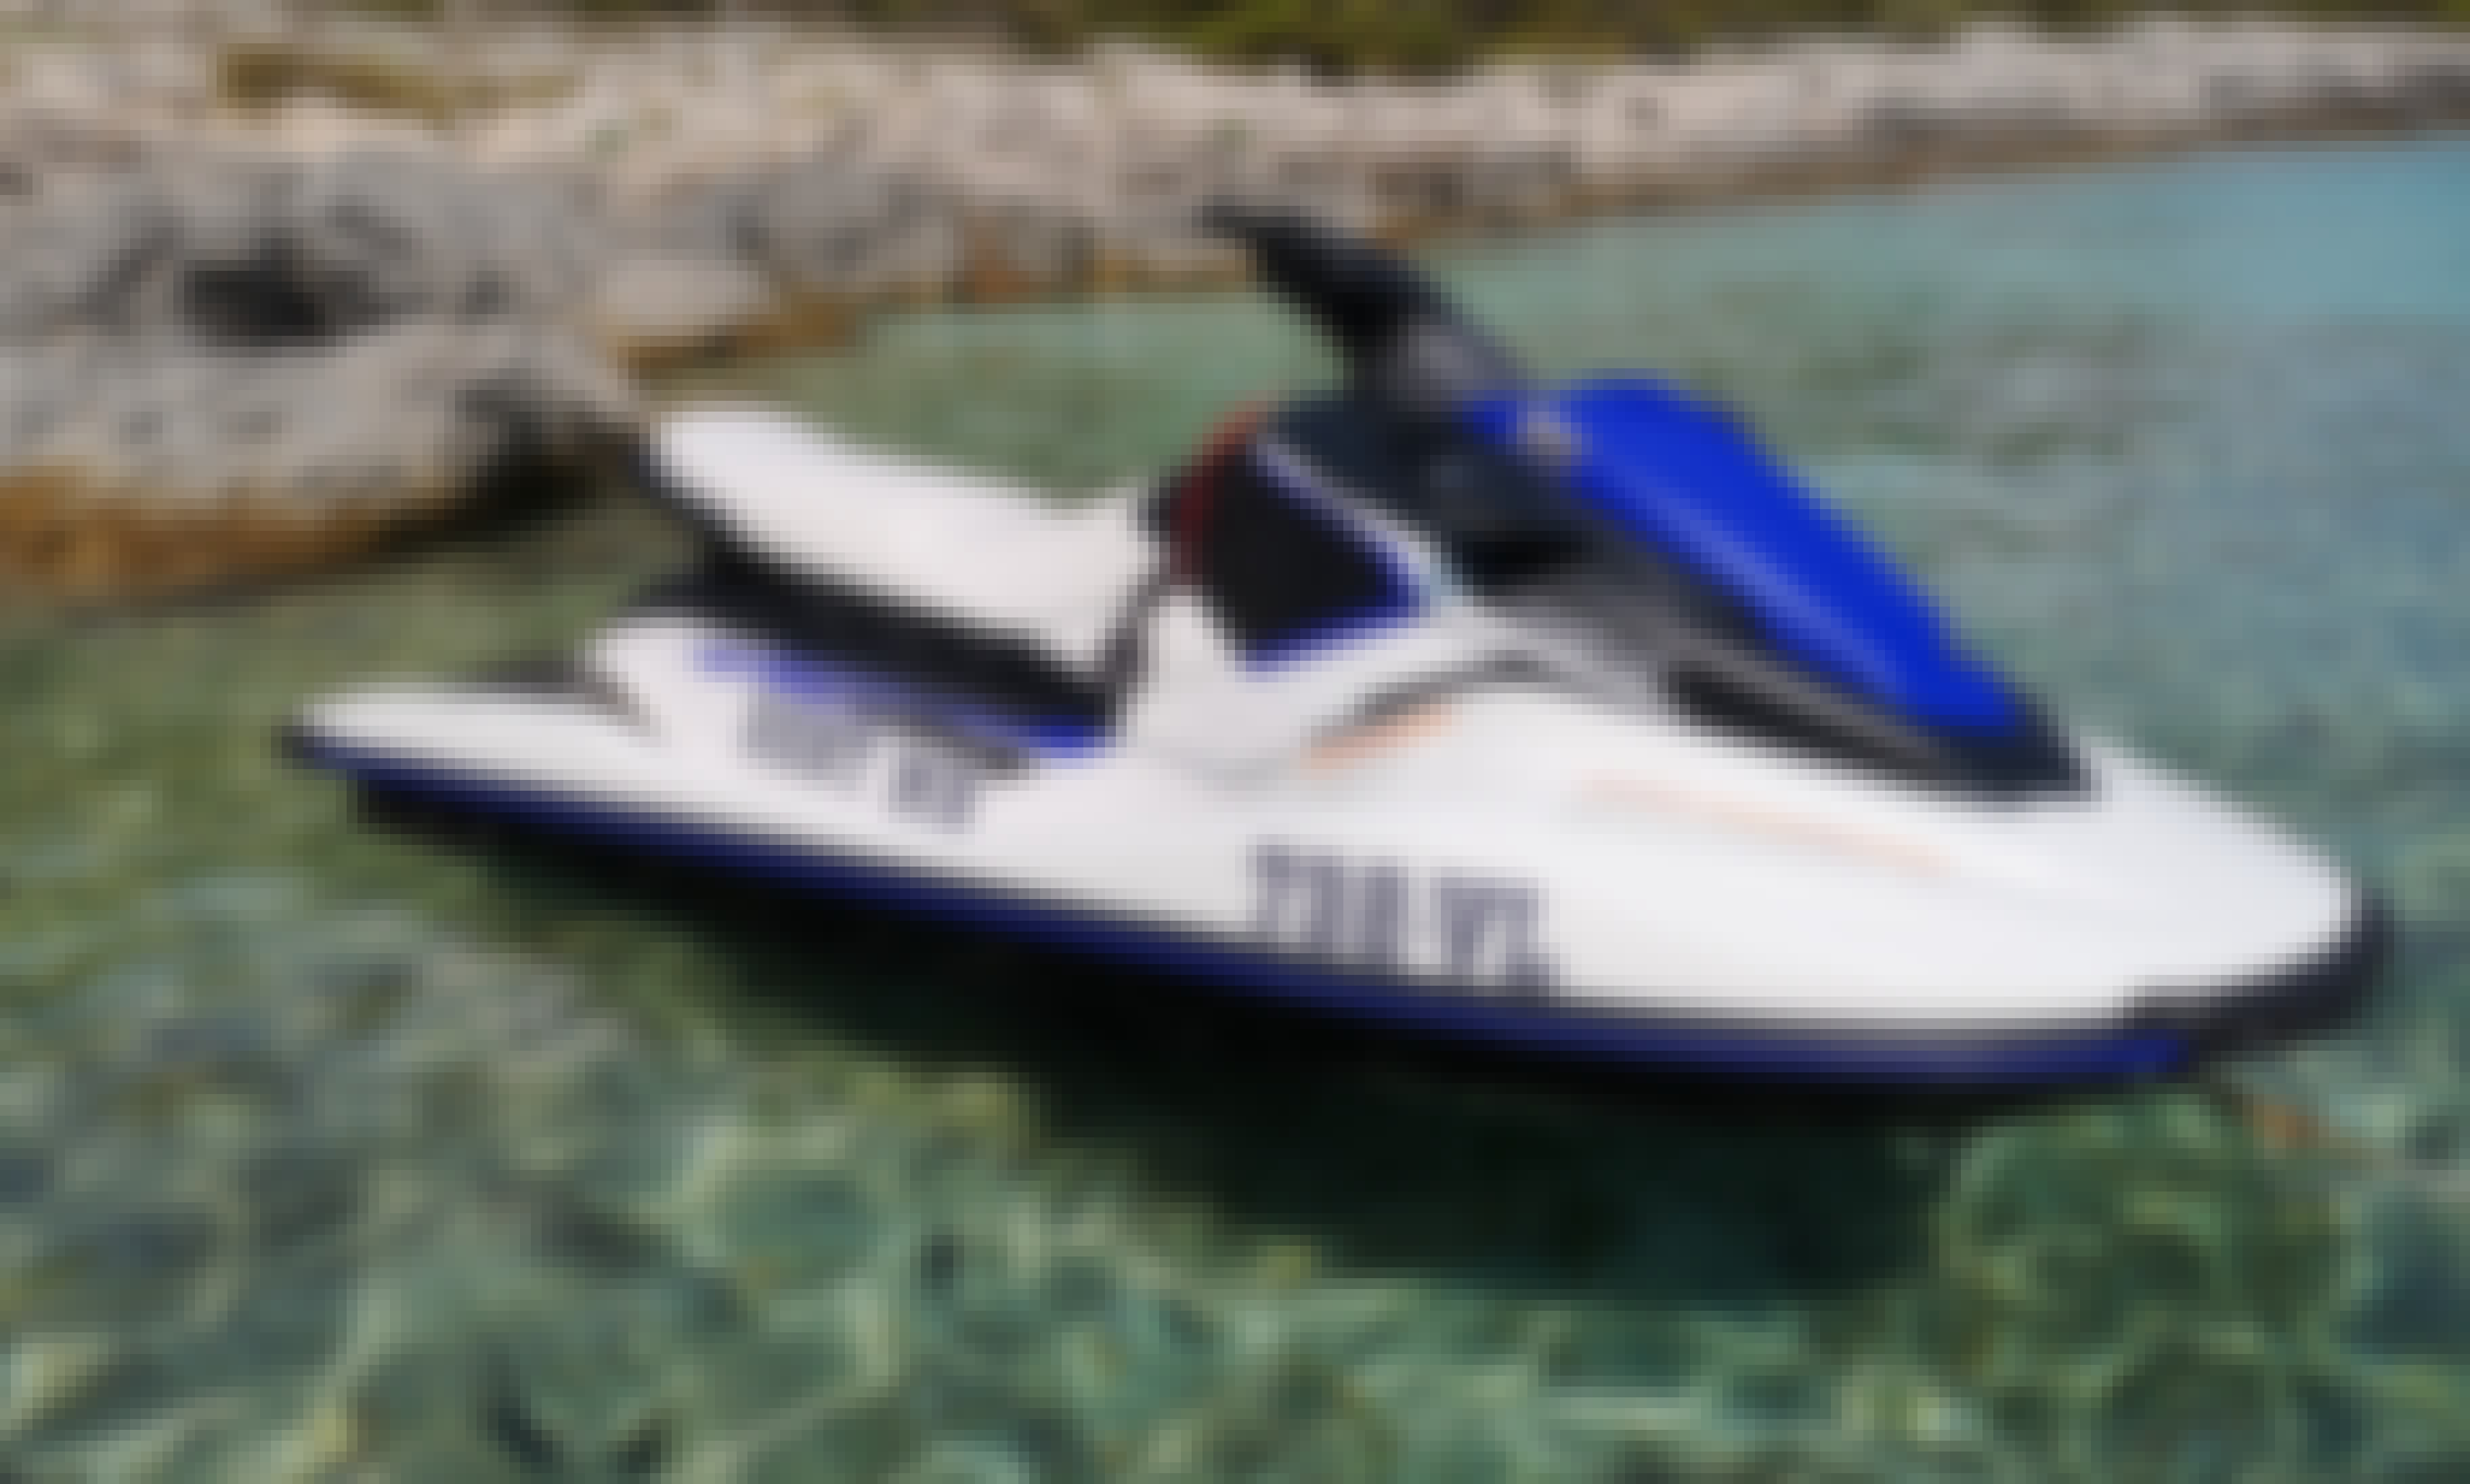 Jet Ski YAMAHA EX Sport 2019 for Rent in Vela Luka, Croatia